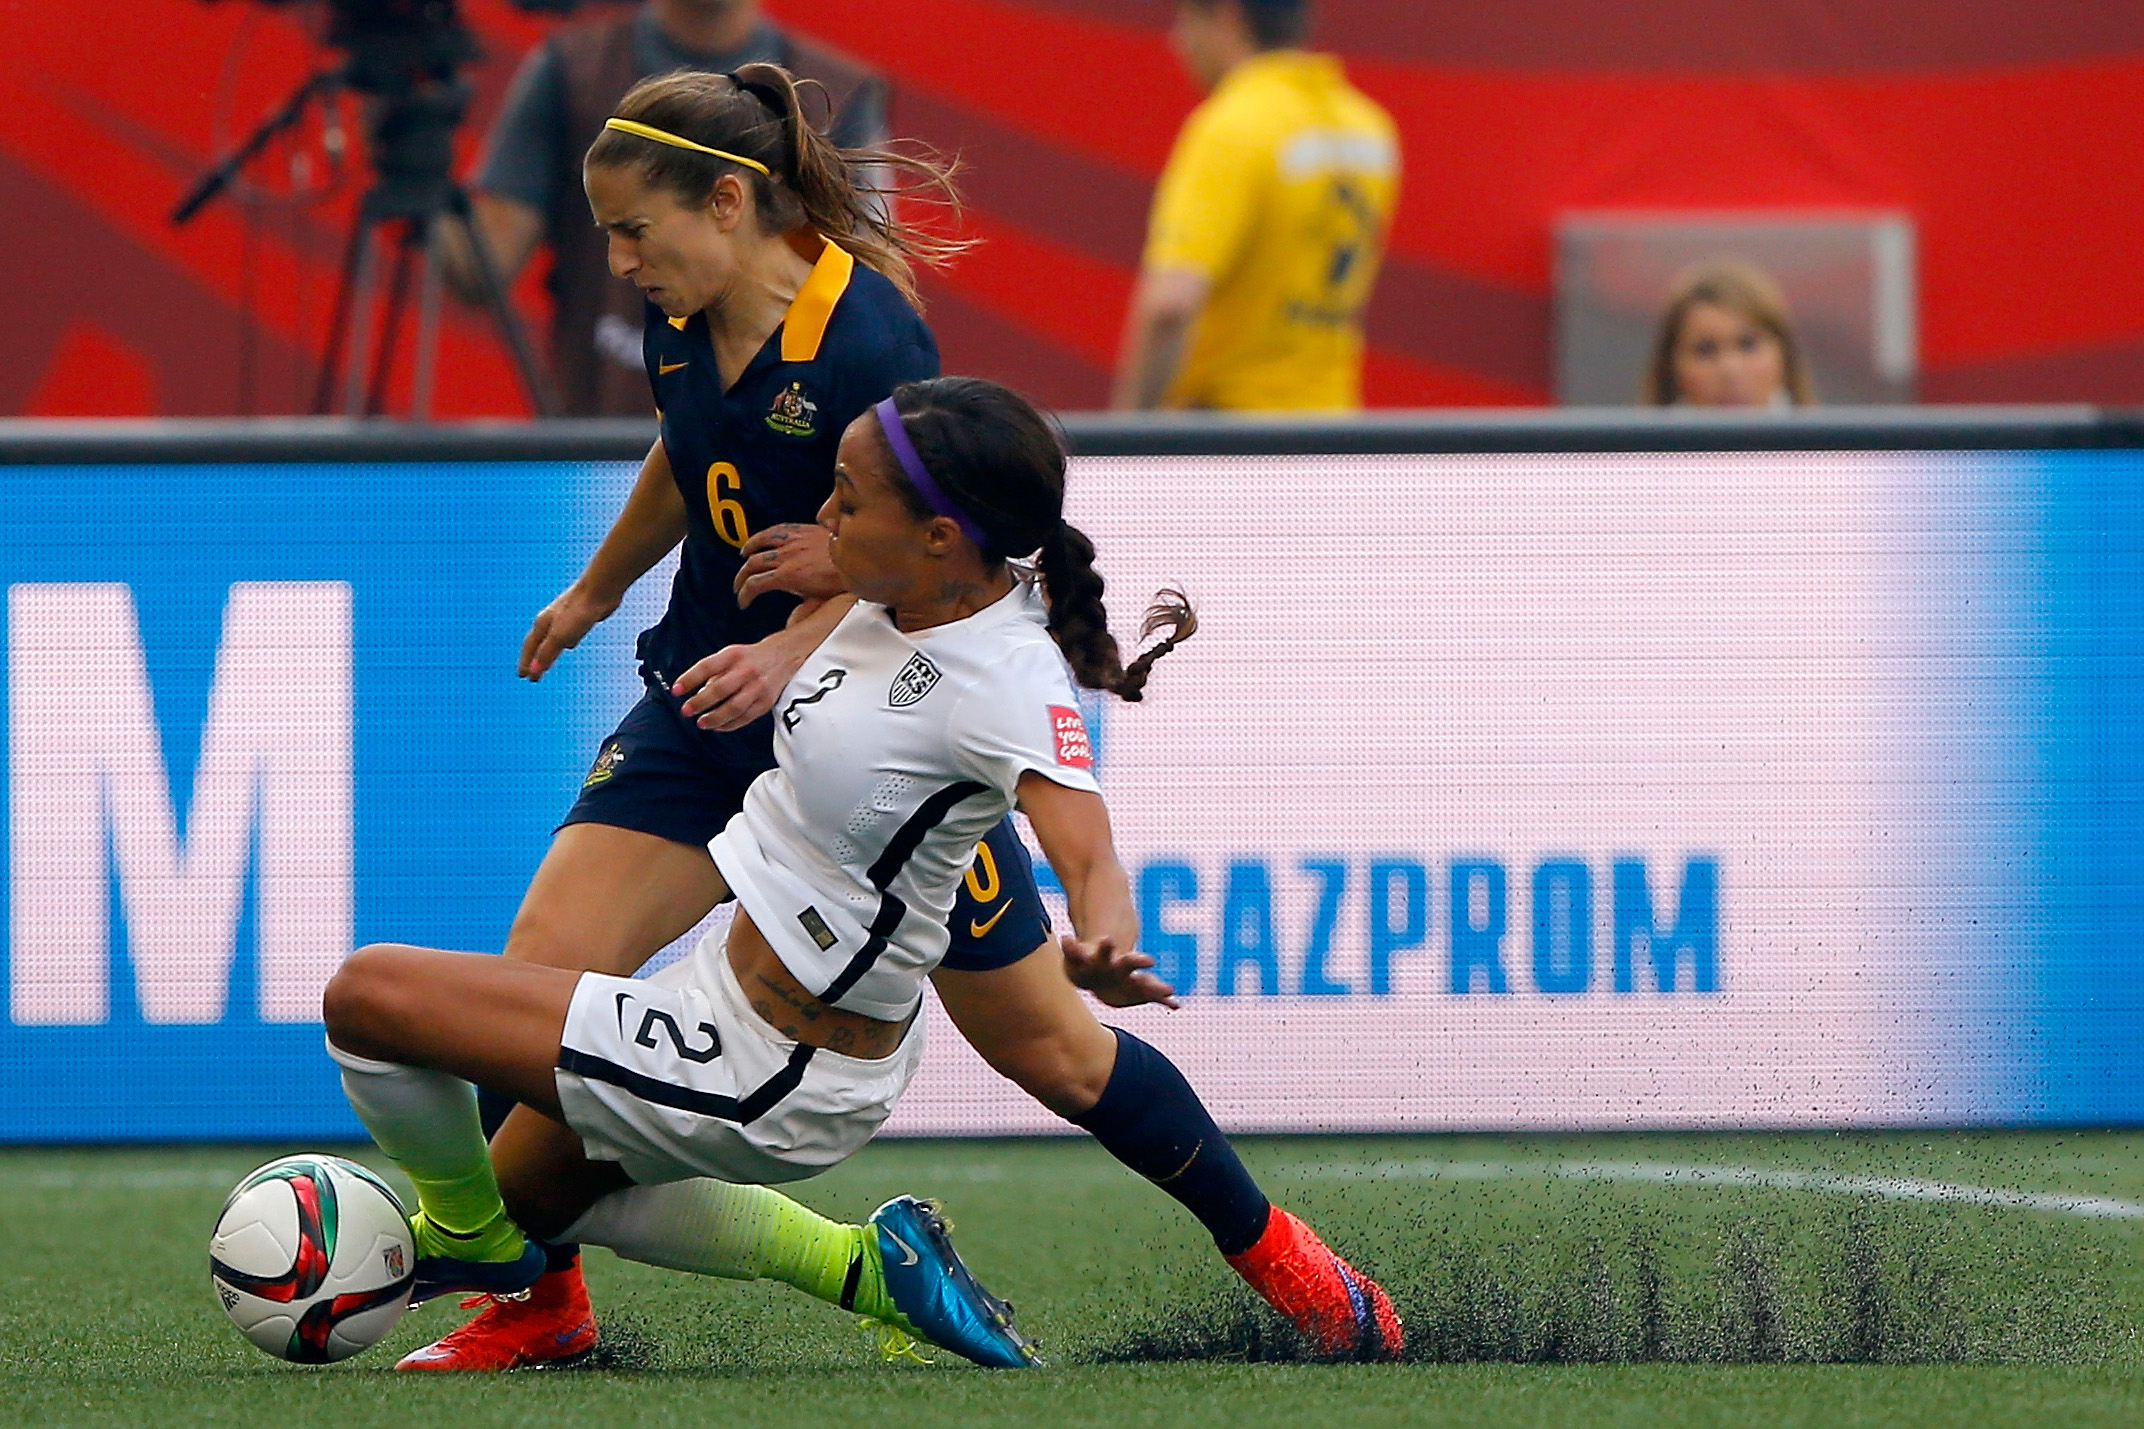 Sydney Leroux of the U.S. challenges Servet Uzunlar of Australia in the first half during the FIFA Women's World Cup 2015 Group D match at Winnipeg Stadium in Winnipeg, Canada, on June 8, 2015